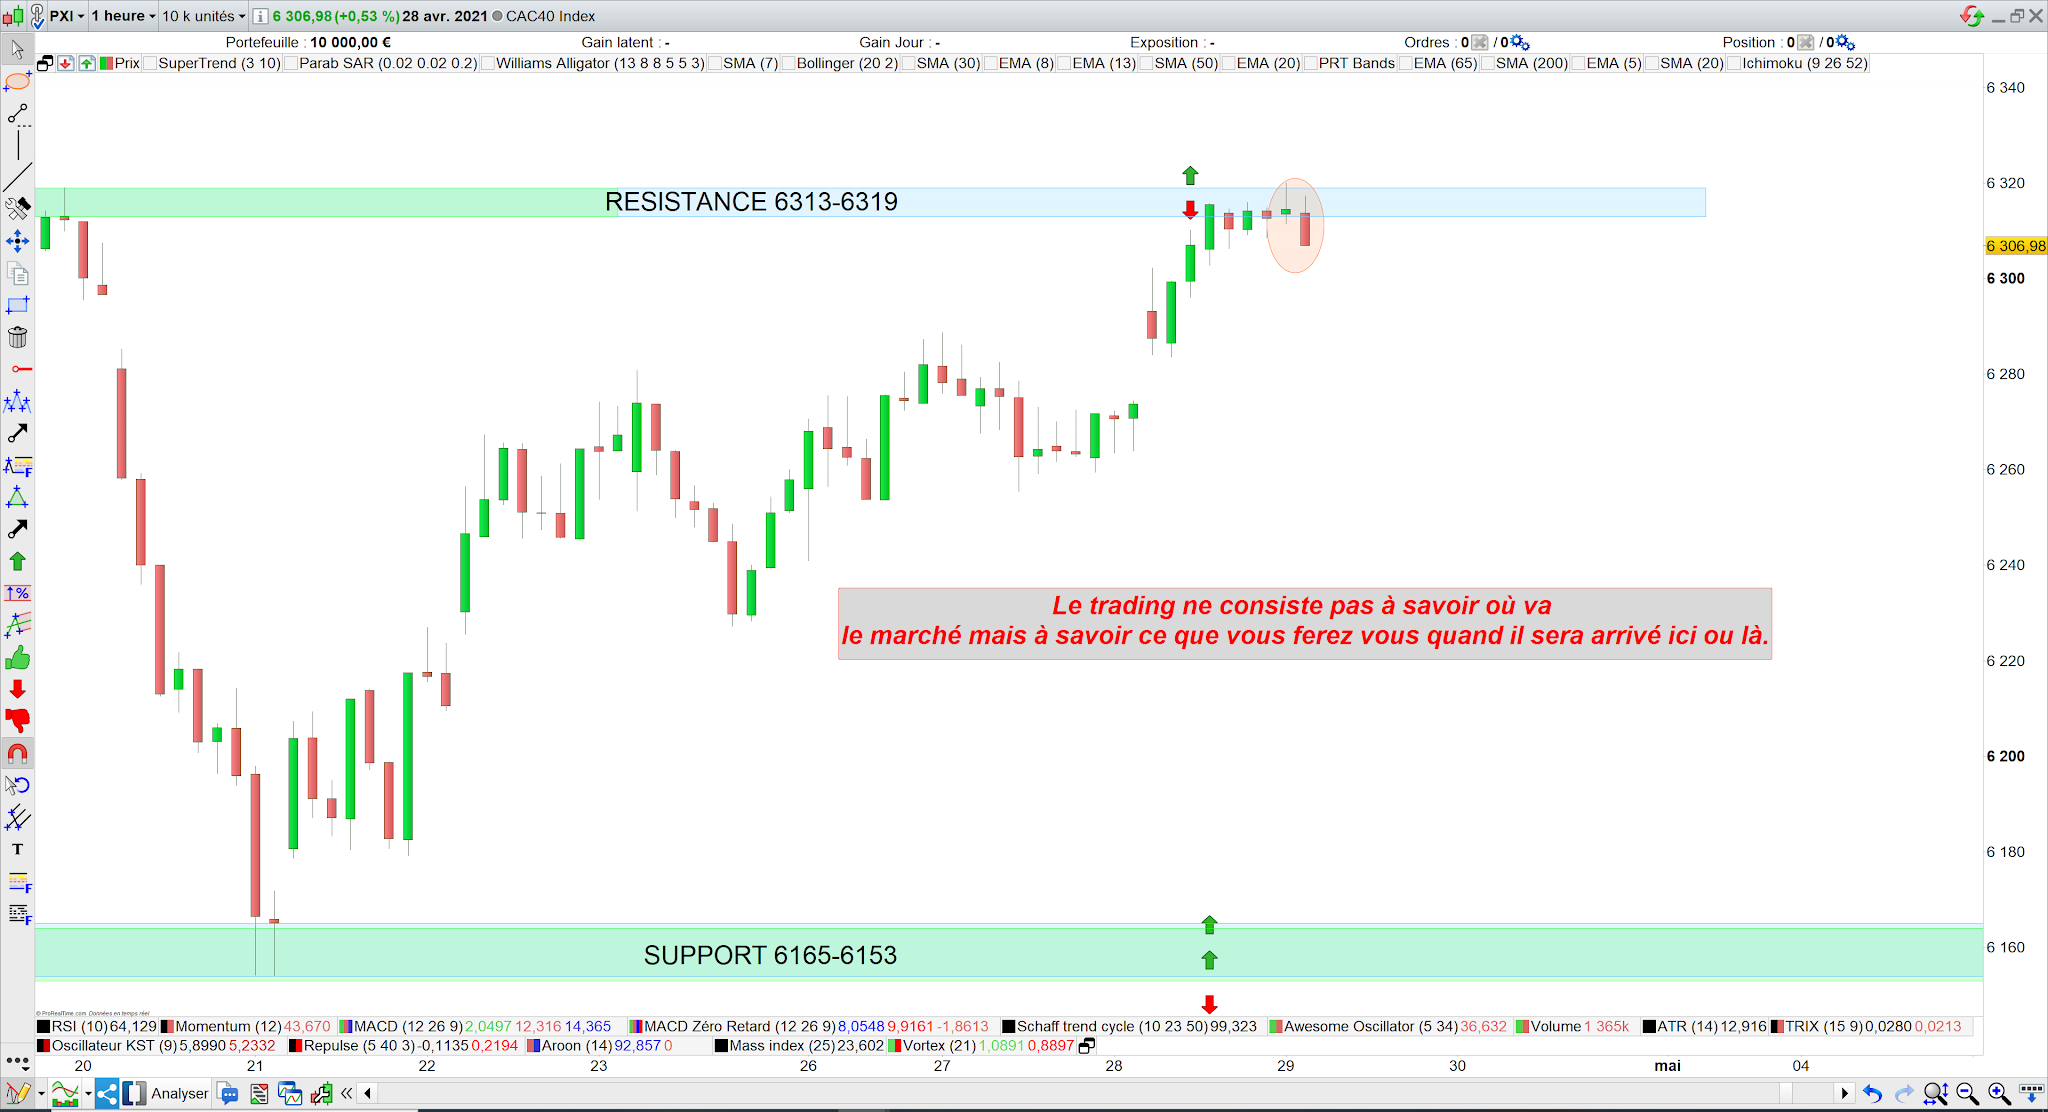 Trading cac40 29 avril 21